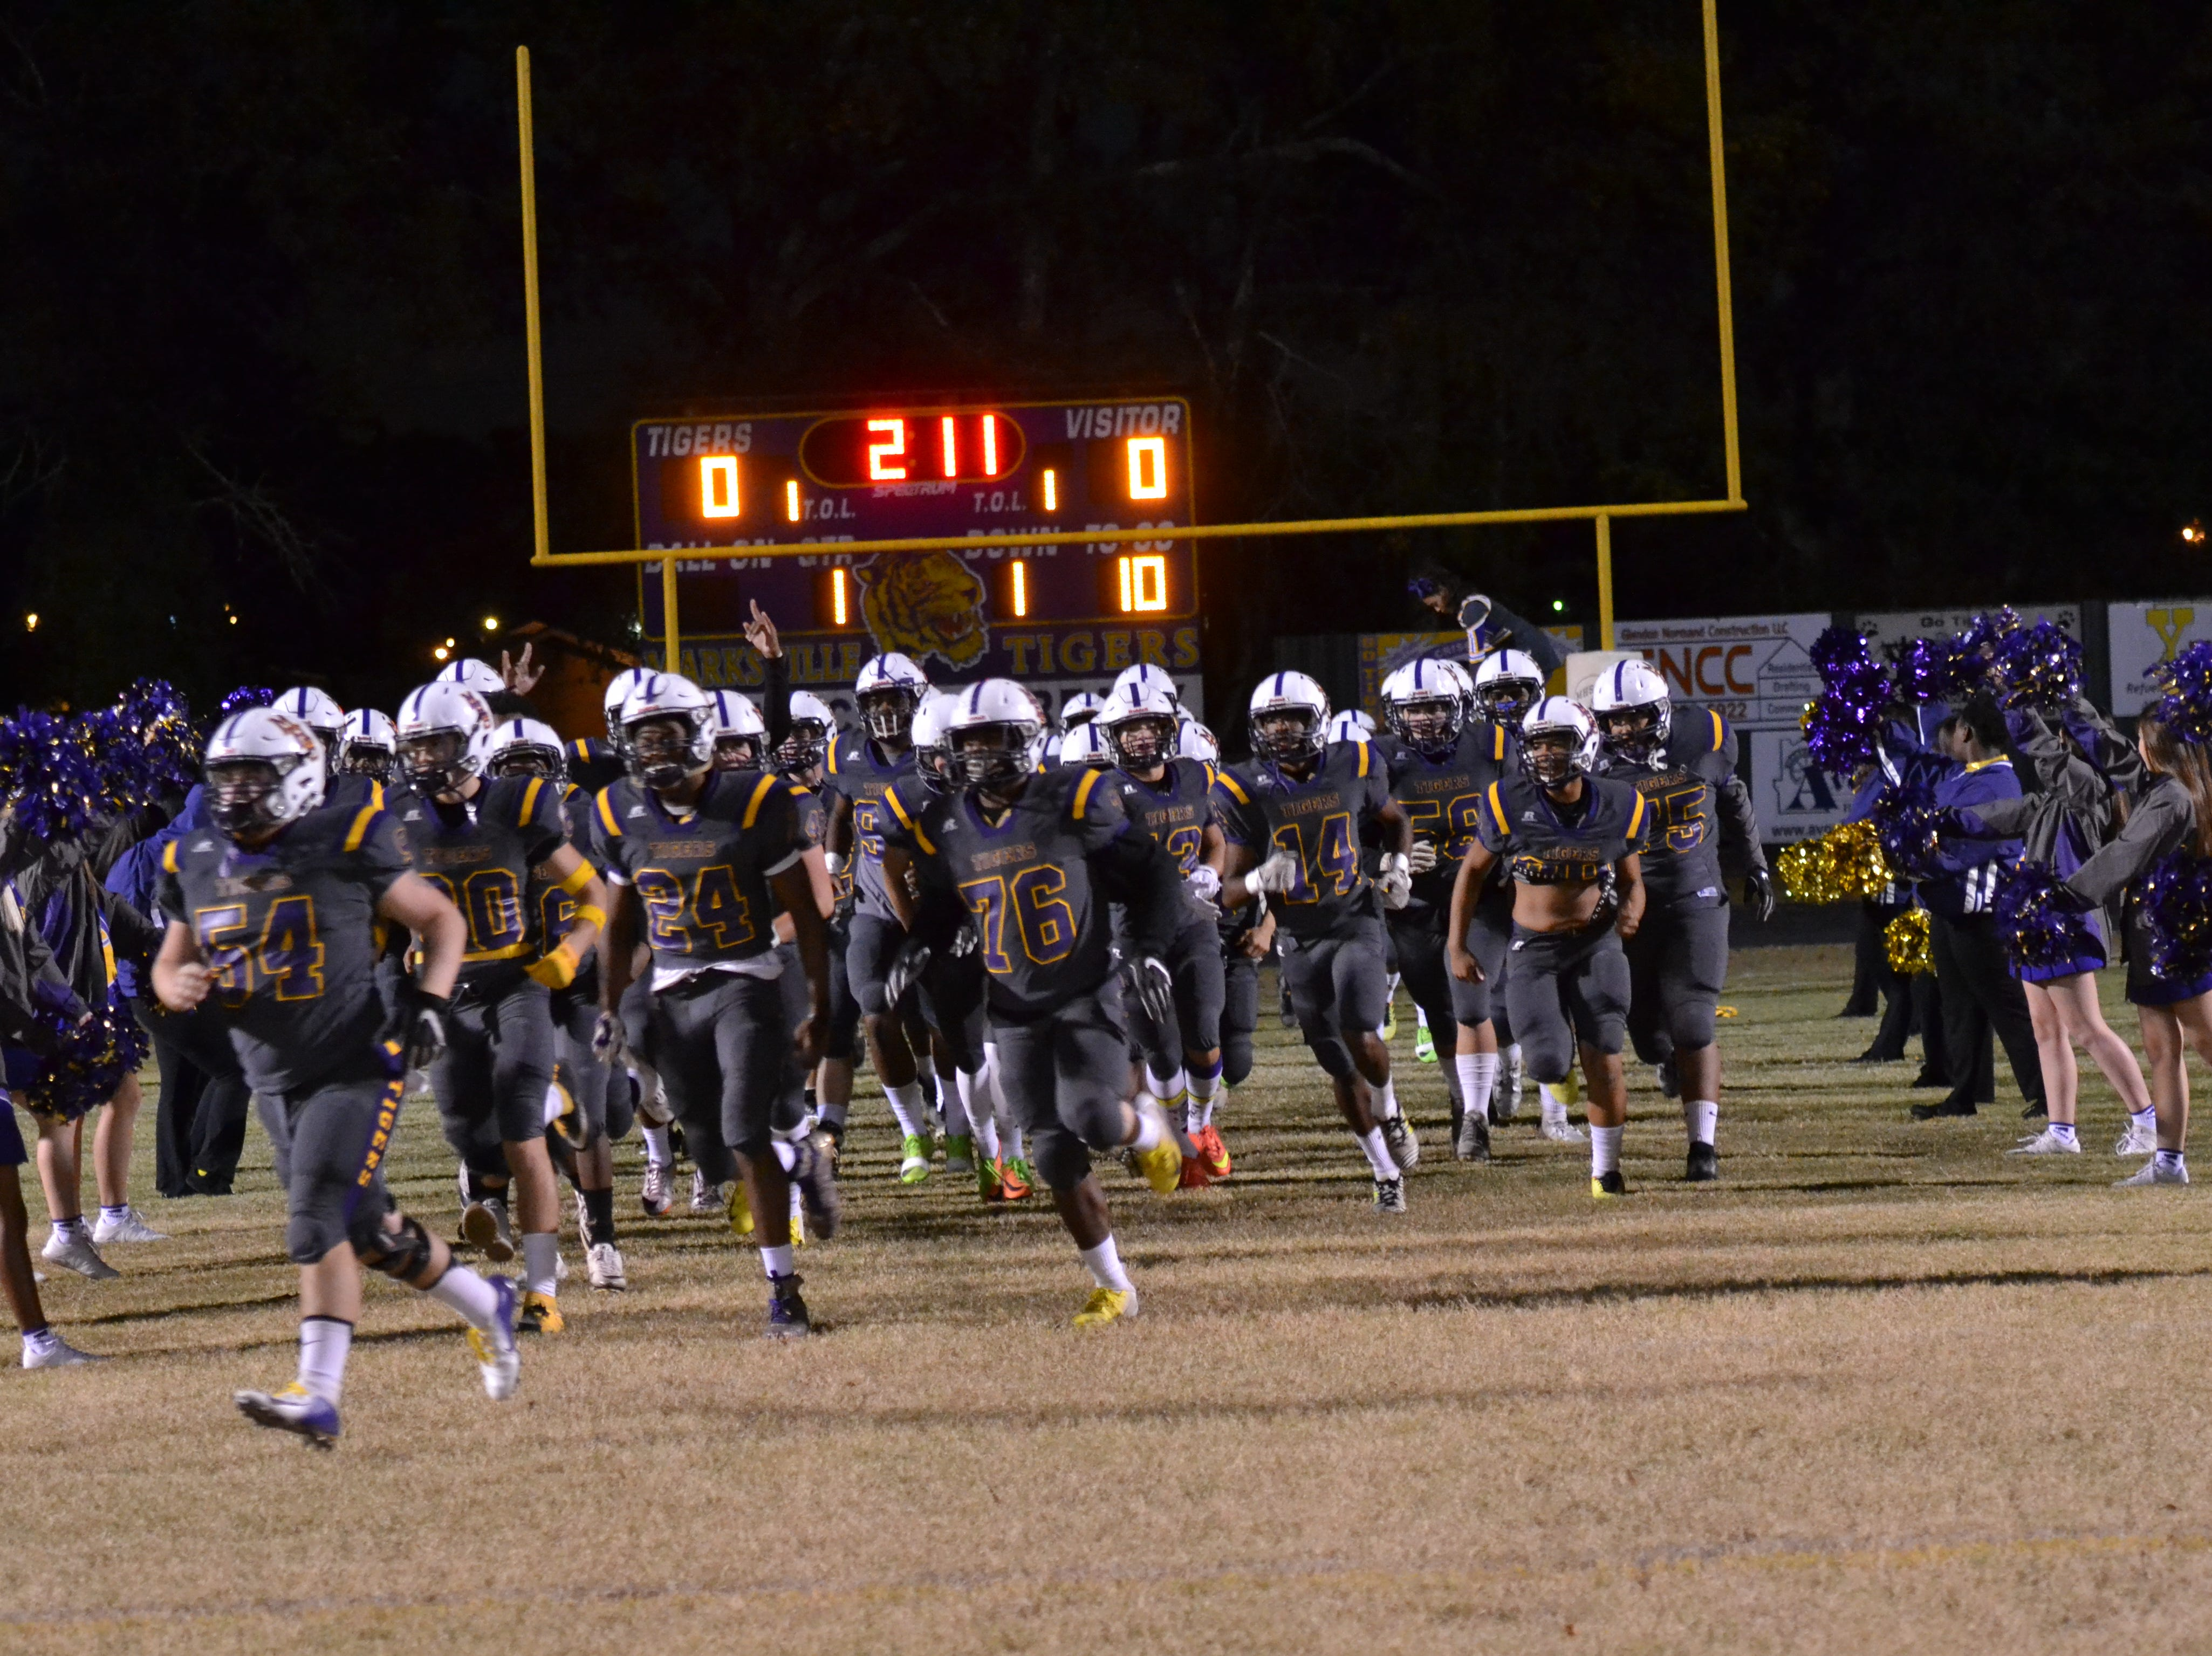 The Marksville Tigers take the field. Marksville and Caldwell met in the regular season finale Friday night with Caldwell edging Marksville 13-8.